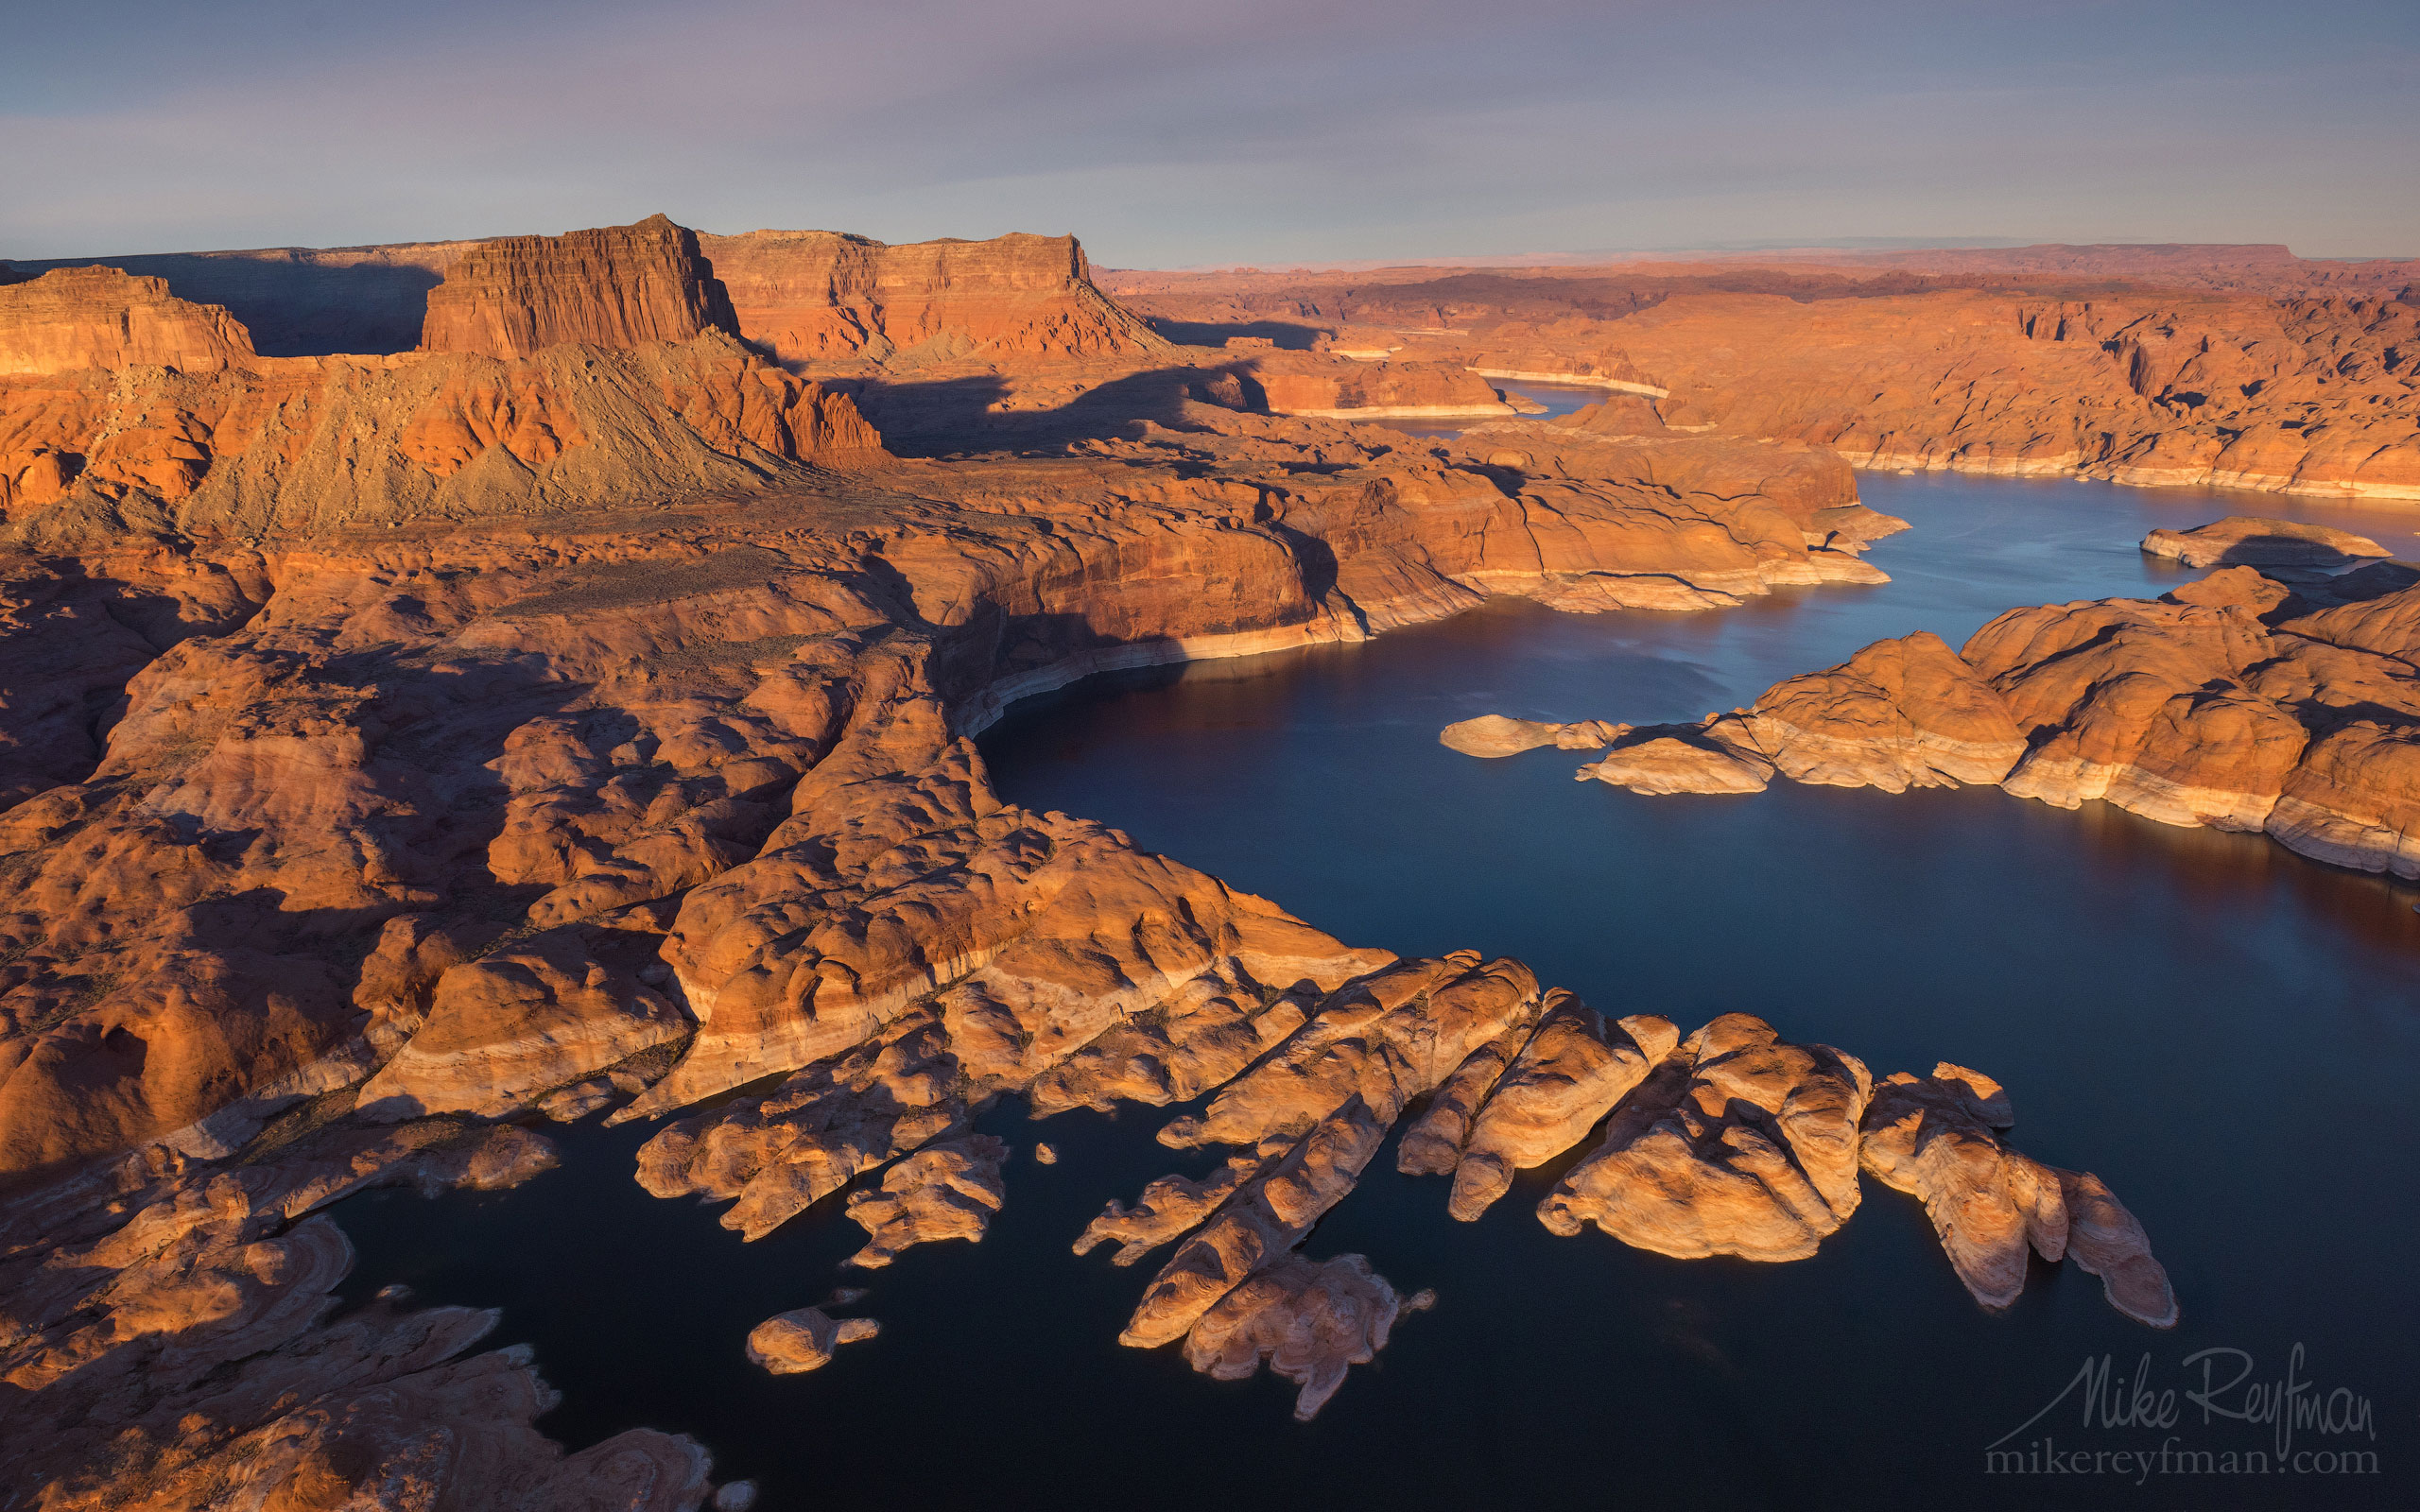 Colorado River Near Mouth of the Forbidding Canyon. Glen Canyon NRA, Lake Powell, Utah/Arizona, US. Aerial. 029-LP3_D1B9999_277.jpg - Lake Powell, Glen Canyon NAR. Colorado and Sun Juan Rivers. Utah/Arizona, USA  - Mike Reyfman Photography